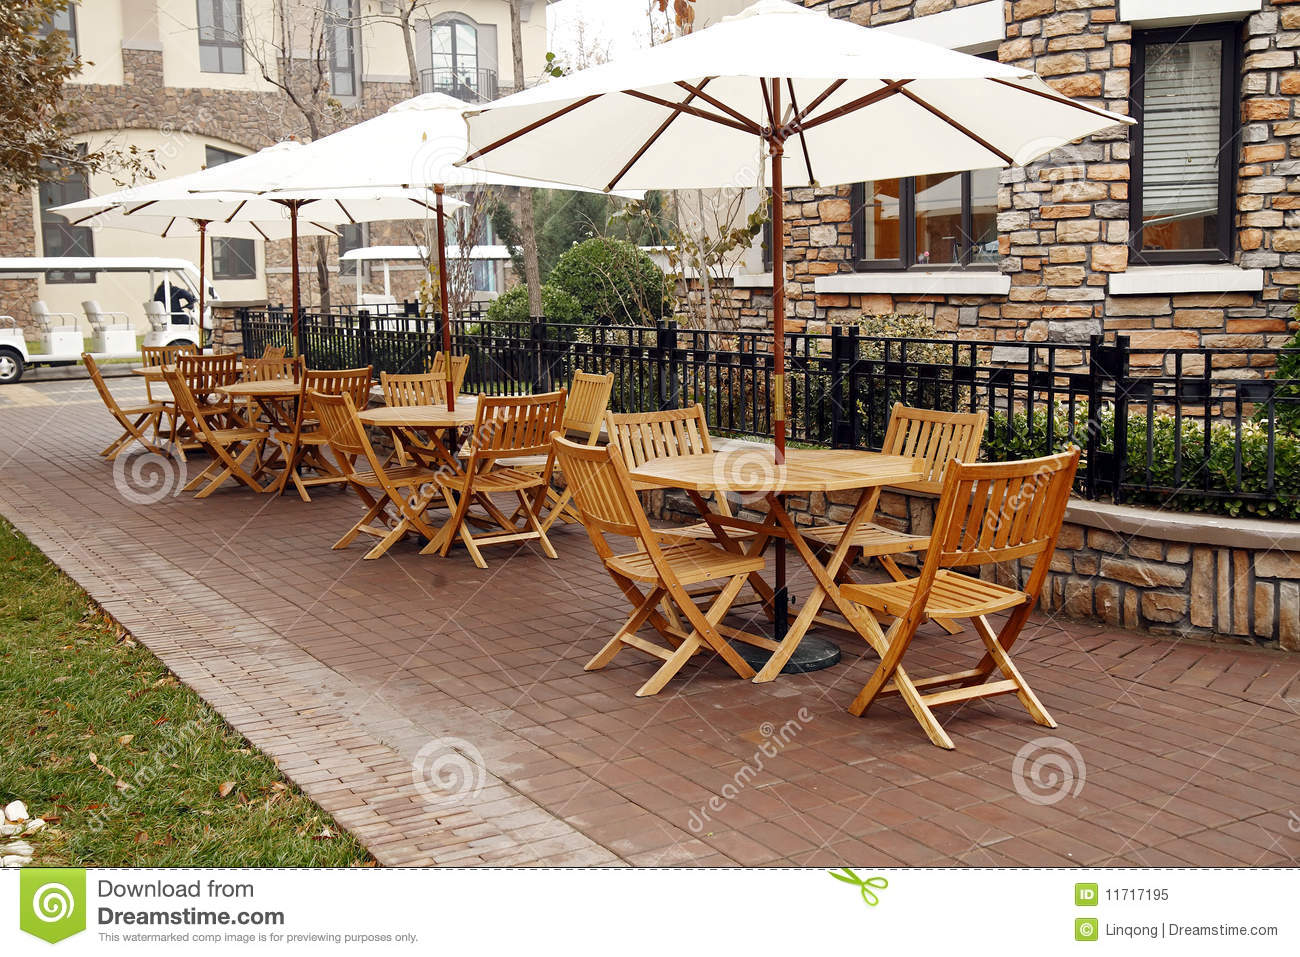 business plan for a restaurant Gabri's restaurant & lounge fine dining restaurant business plan executive summary gabri's restaurant & lounge is a fine dining establishment in long branch, new jersey.